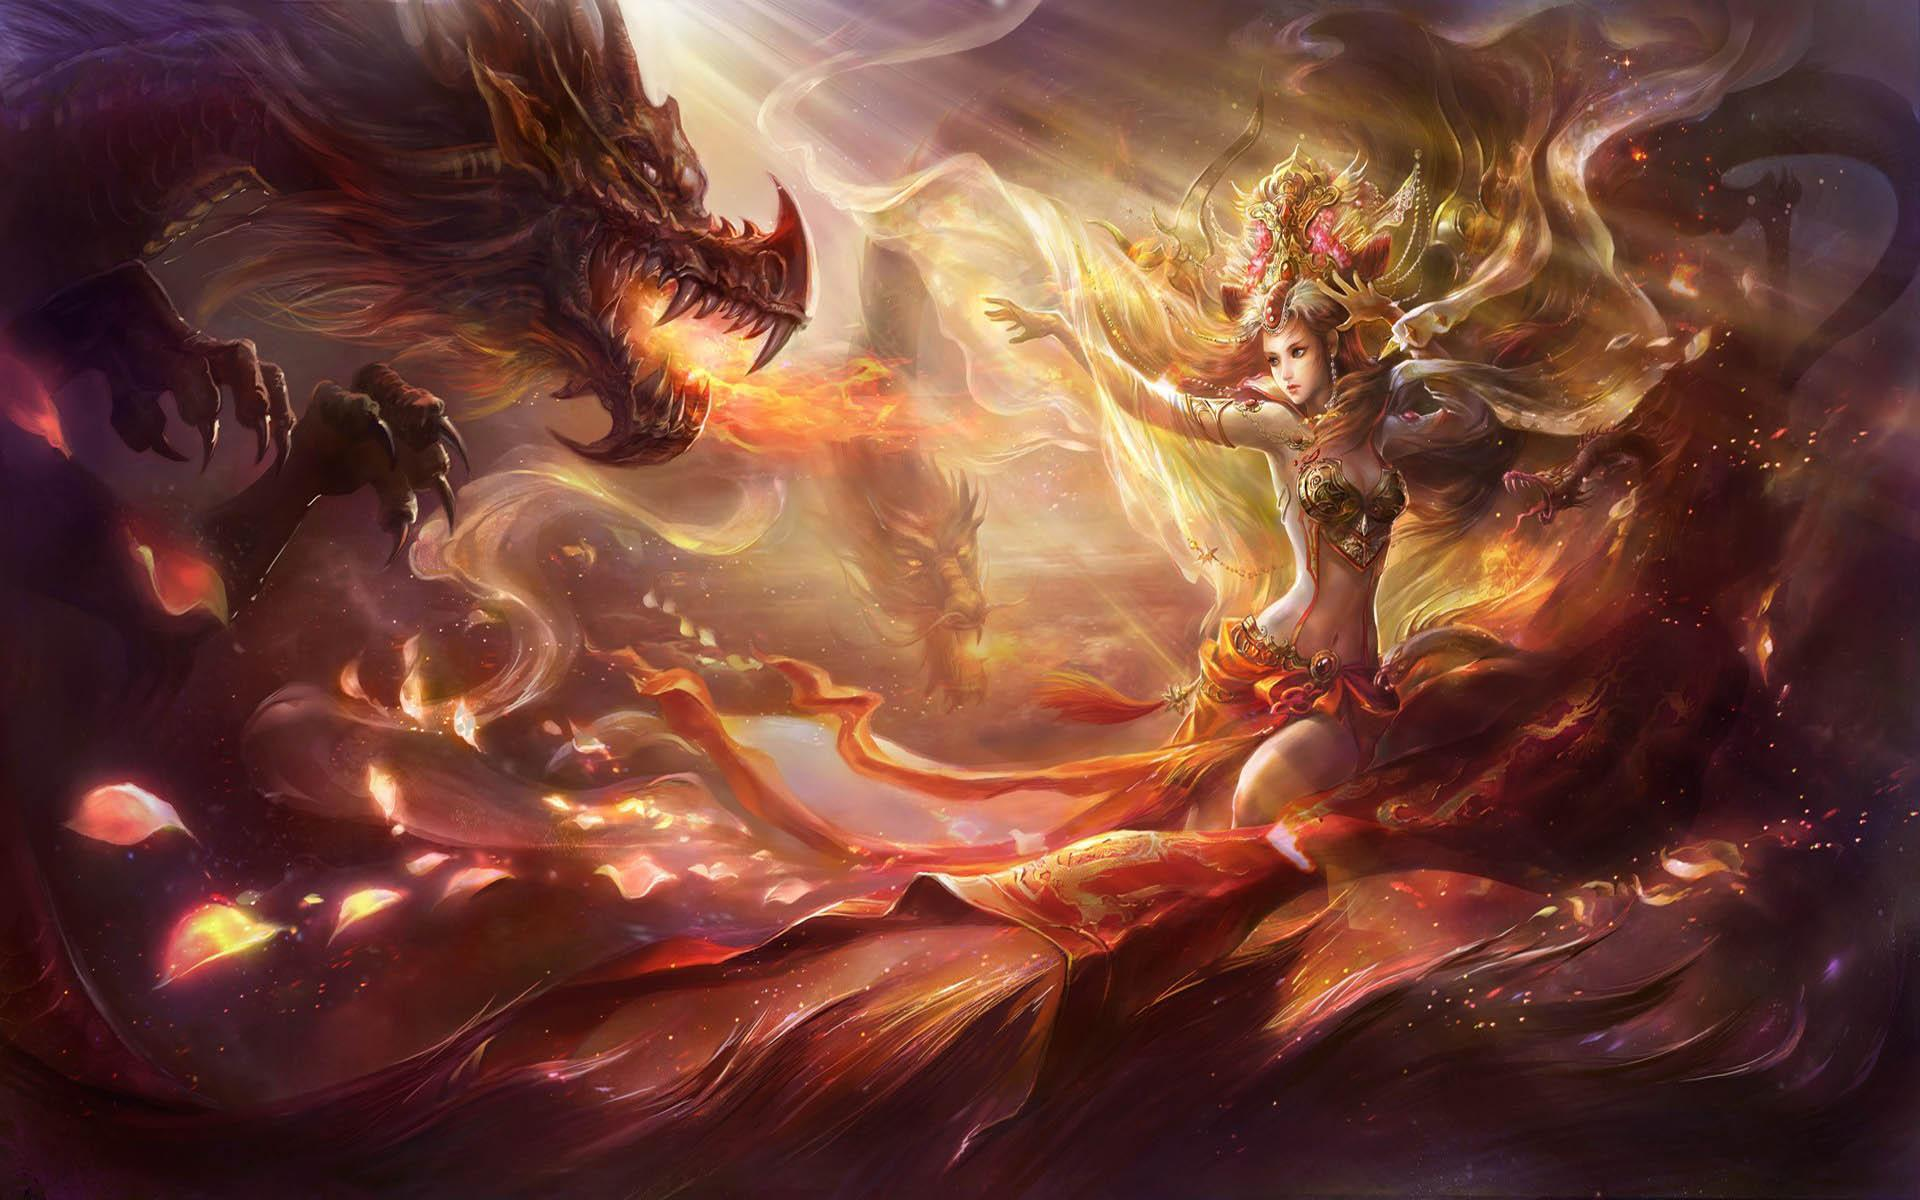 Wallpaper Tags: dragon queen fantasy beauty